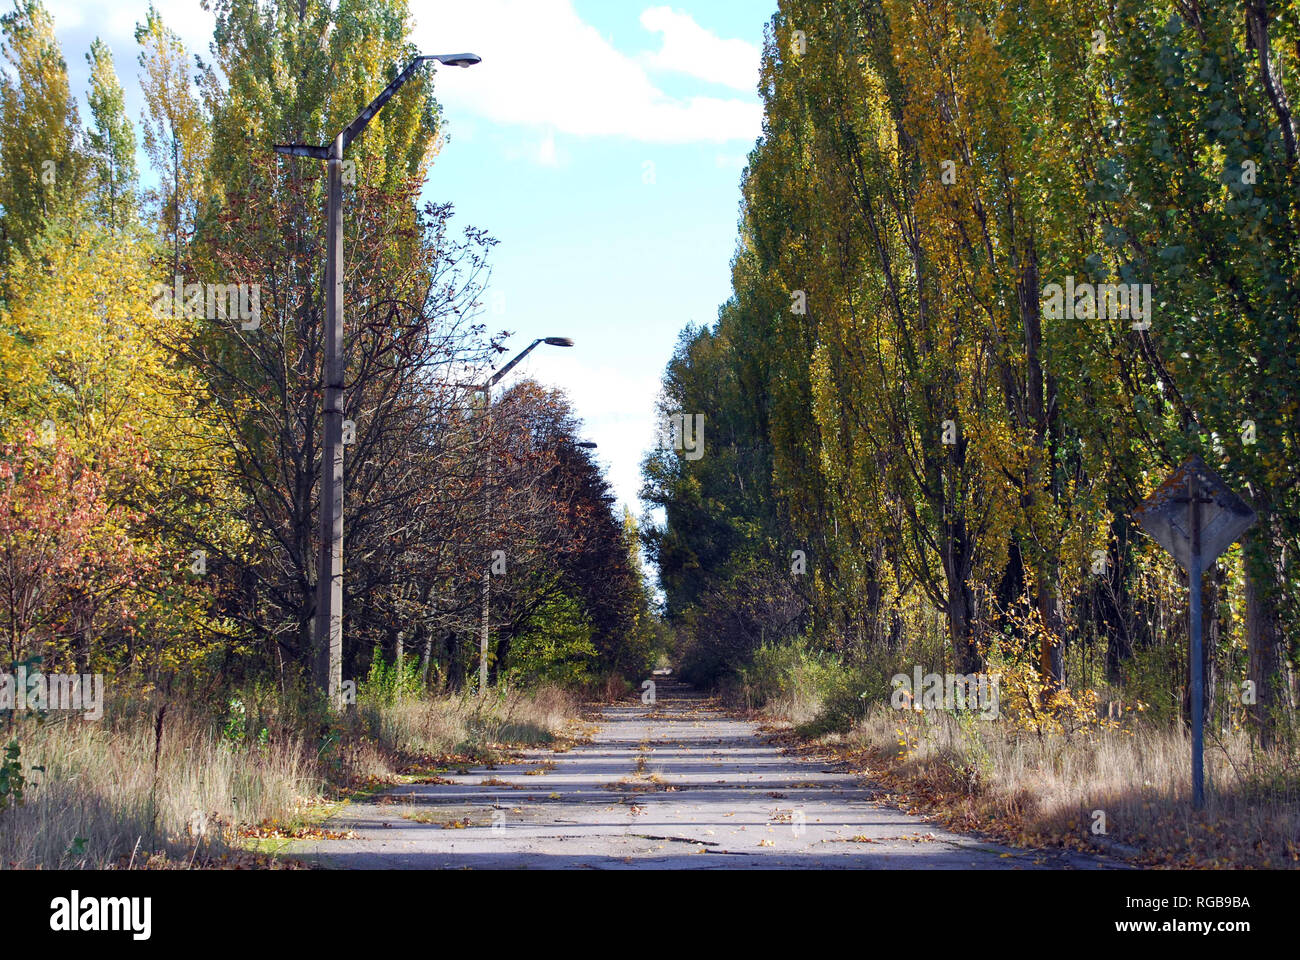 The abandoned streets and buildings in the town of Pripyat in the Chernobyl Exclusion Zone, Ukraine - Stock Image